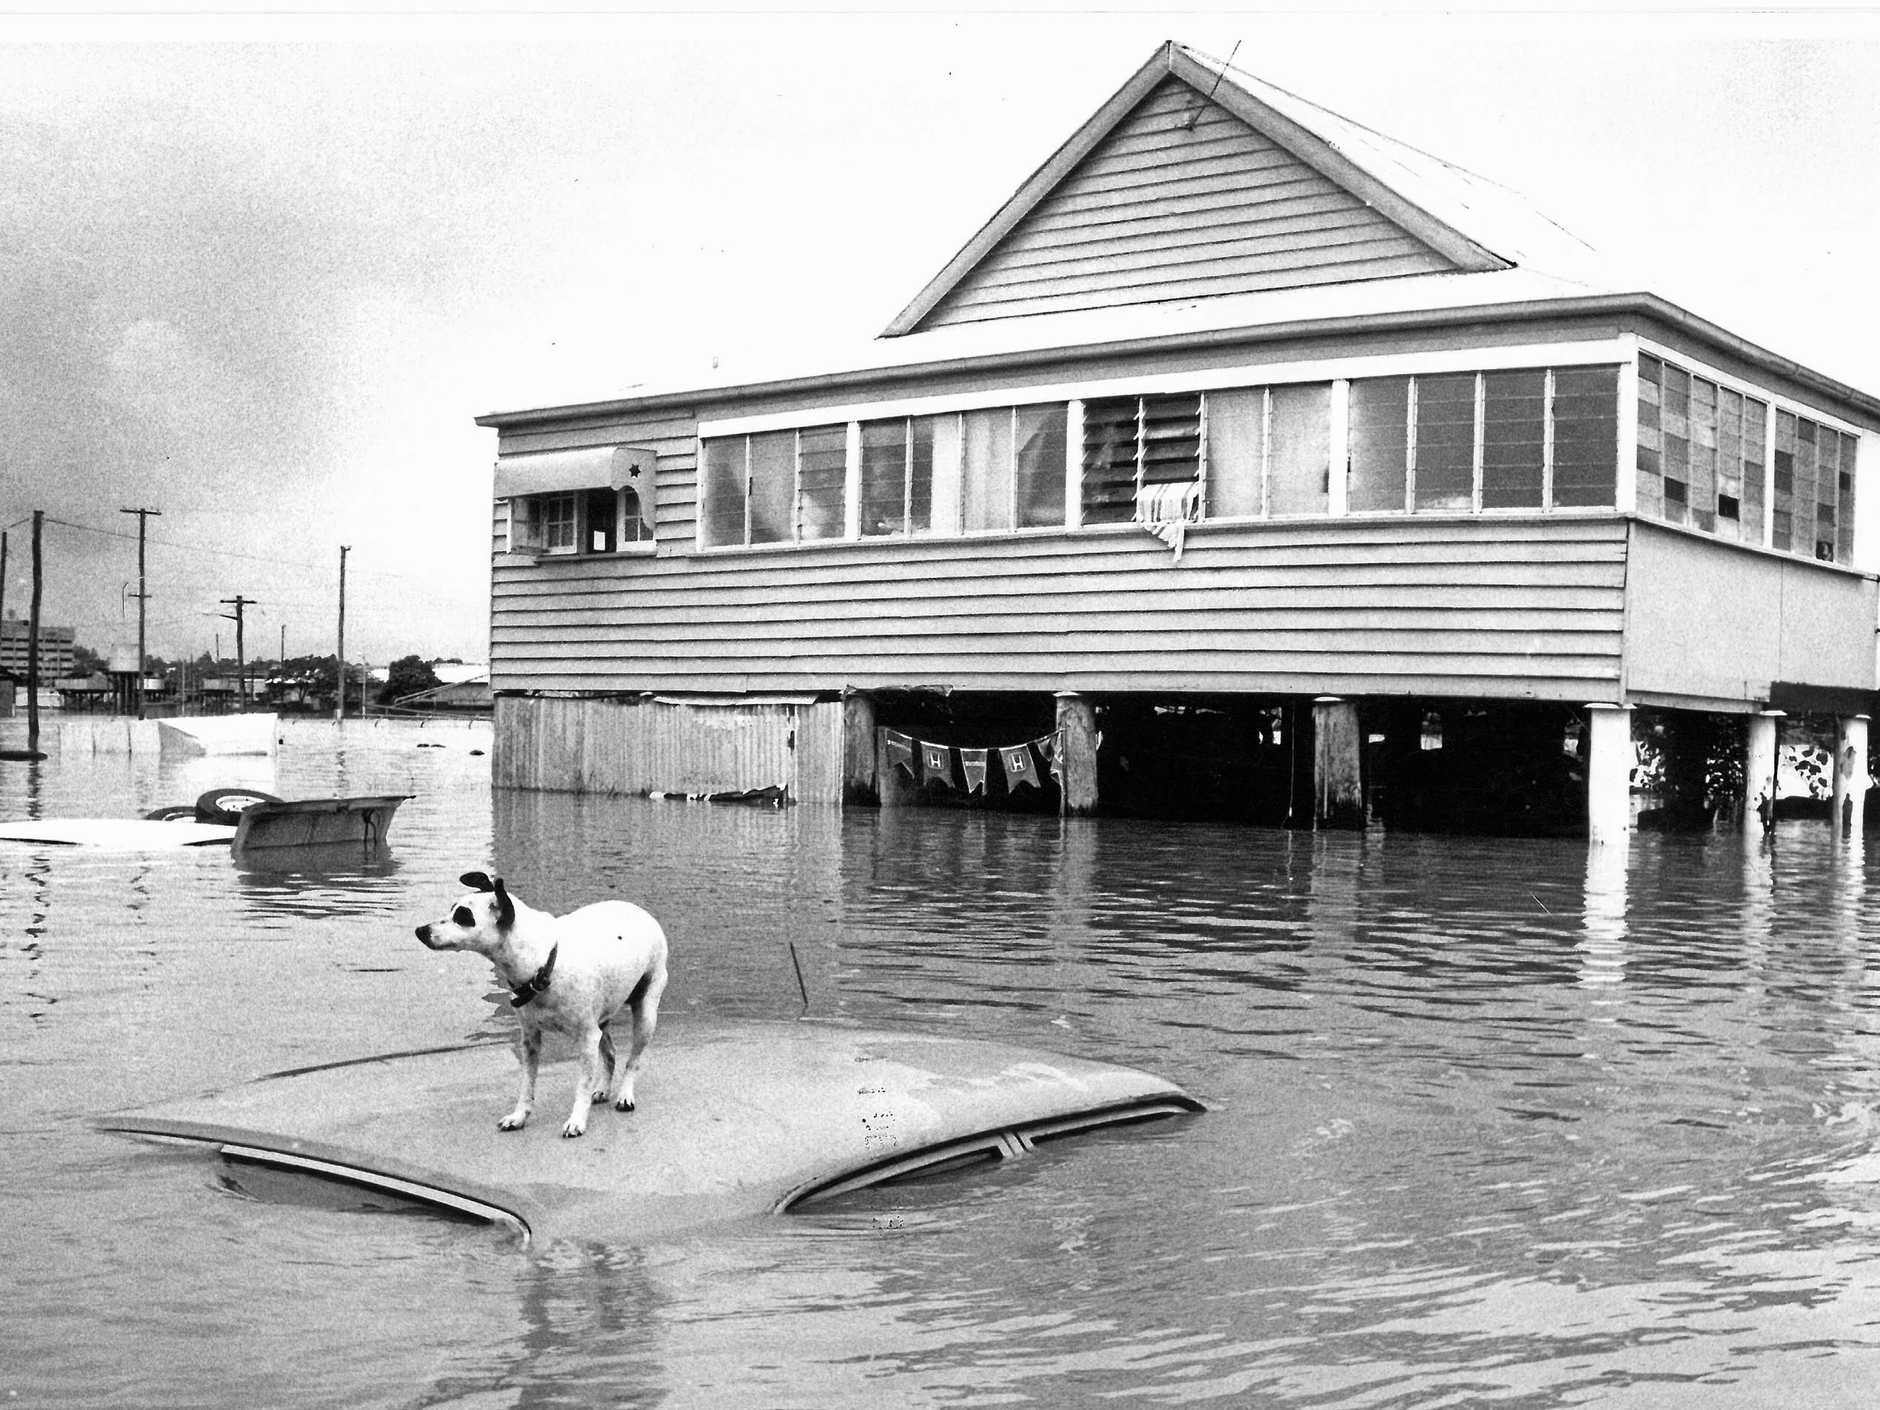 File image from Rockhampton Floods in 1991. Car submerged in Bolsover Street, Depot Hill.